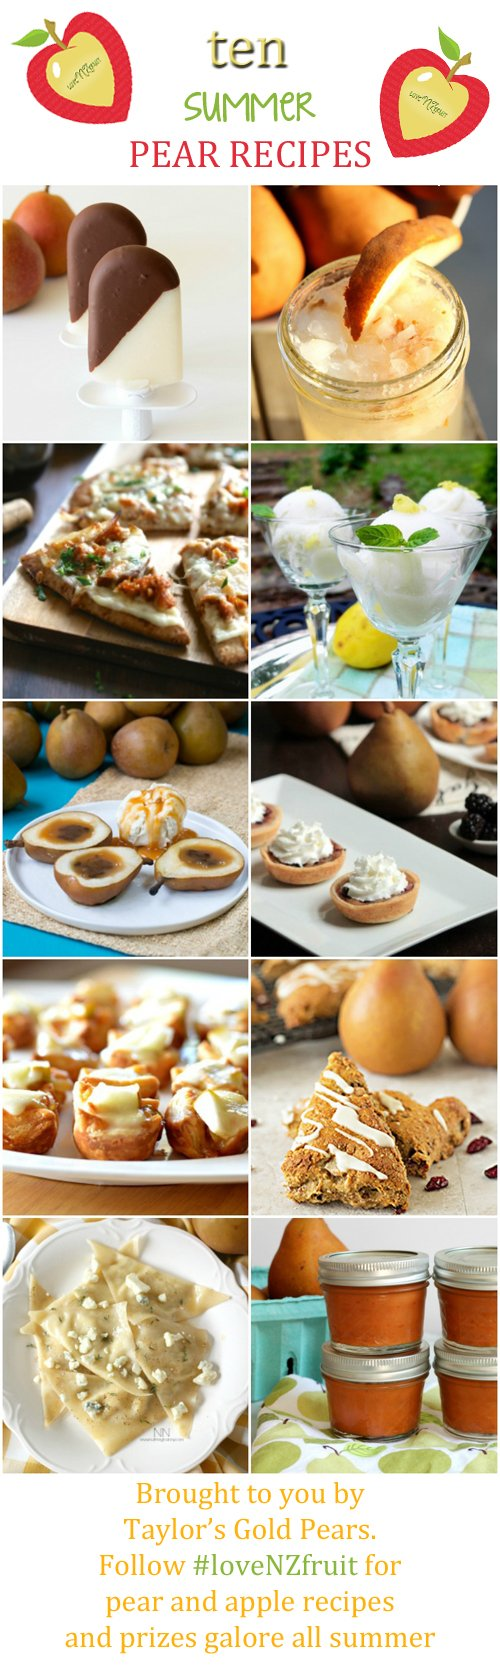 Mini Pear and Blackberry Pies PLUS TEN AMAZING SUMMER PEAR RECIPES #loveNZfruit